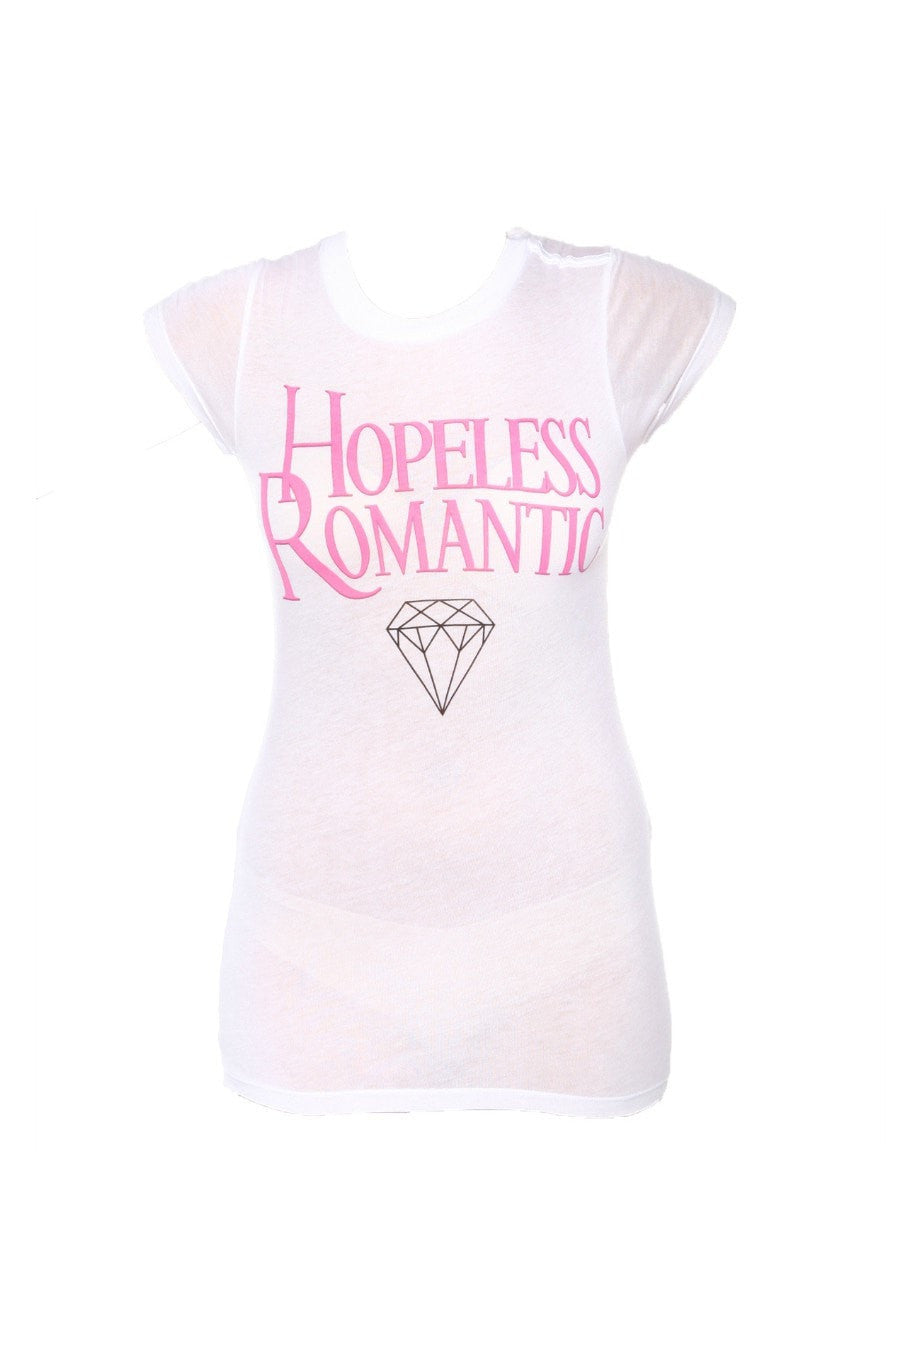 WILDFOX Couture Skinny Hopeless Romantic T Shirt , T Shirt WILDFOX Couture Clothing, One Honey Boutique  Australian Online Store - 1